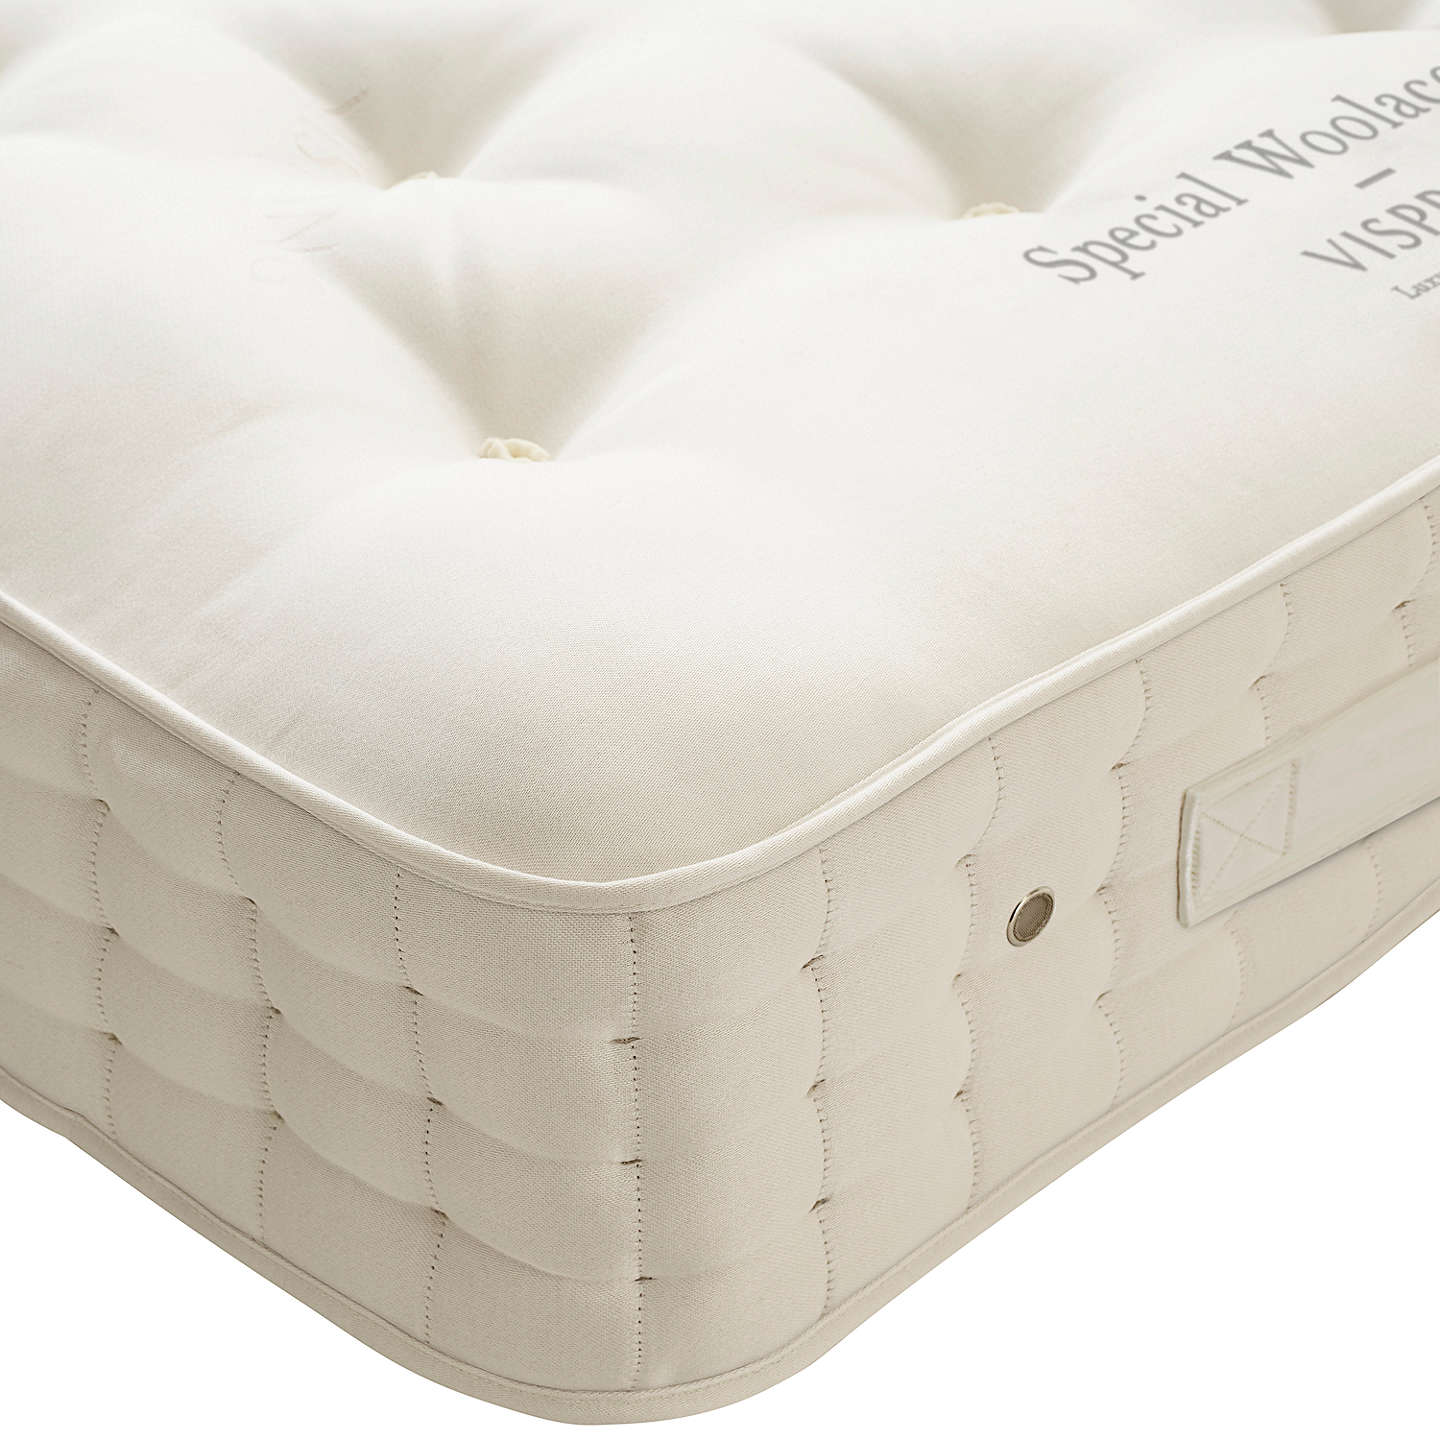 BuyVispring Special Woolacombe Mattress, Medium, King Size Online at johnlewis.com